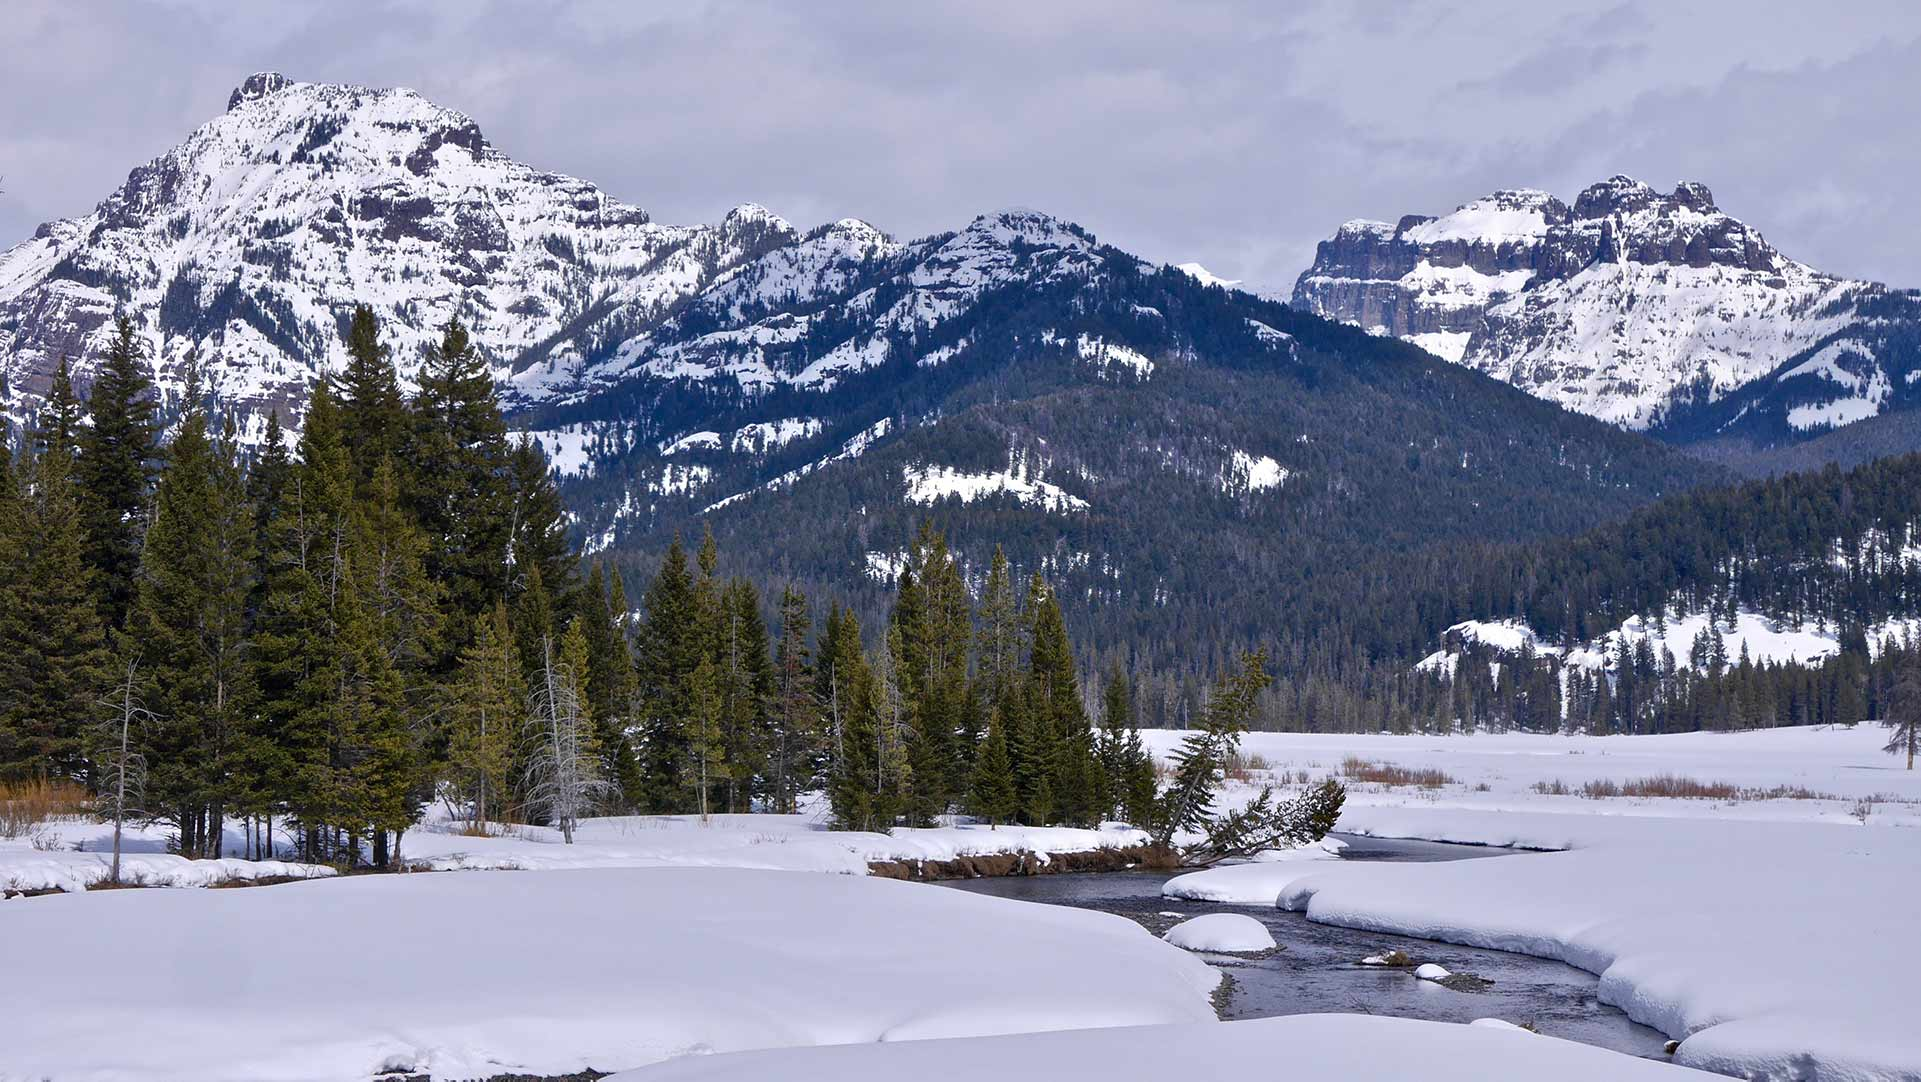 frozen river with snowy mountains and pine trees